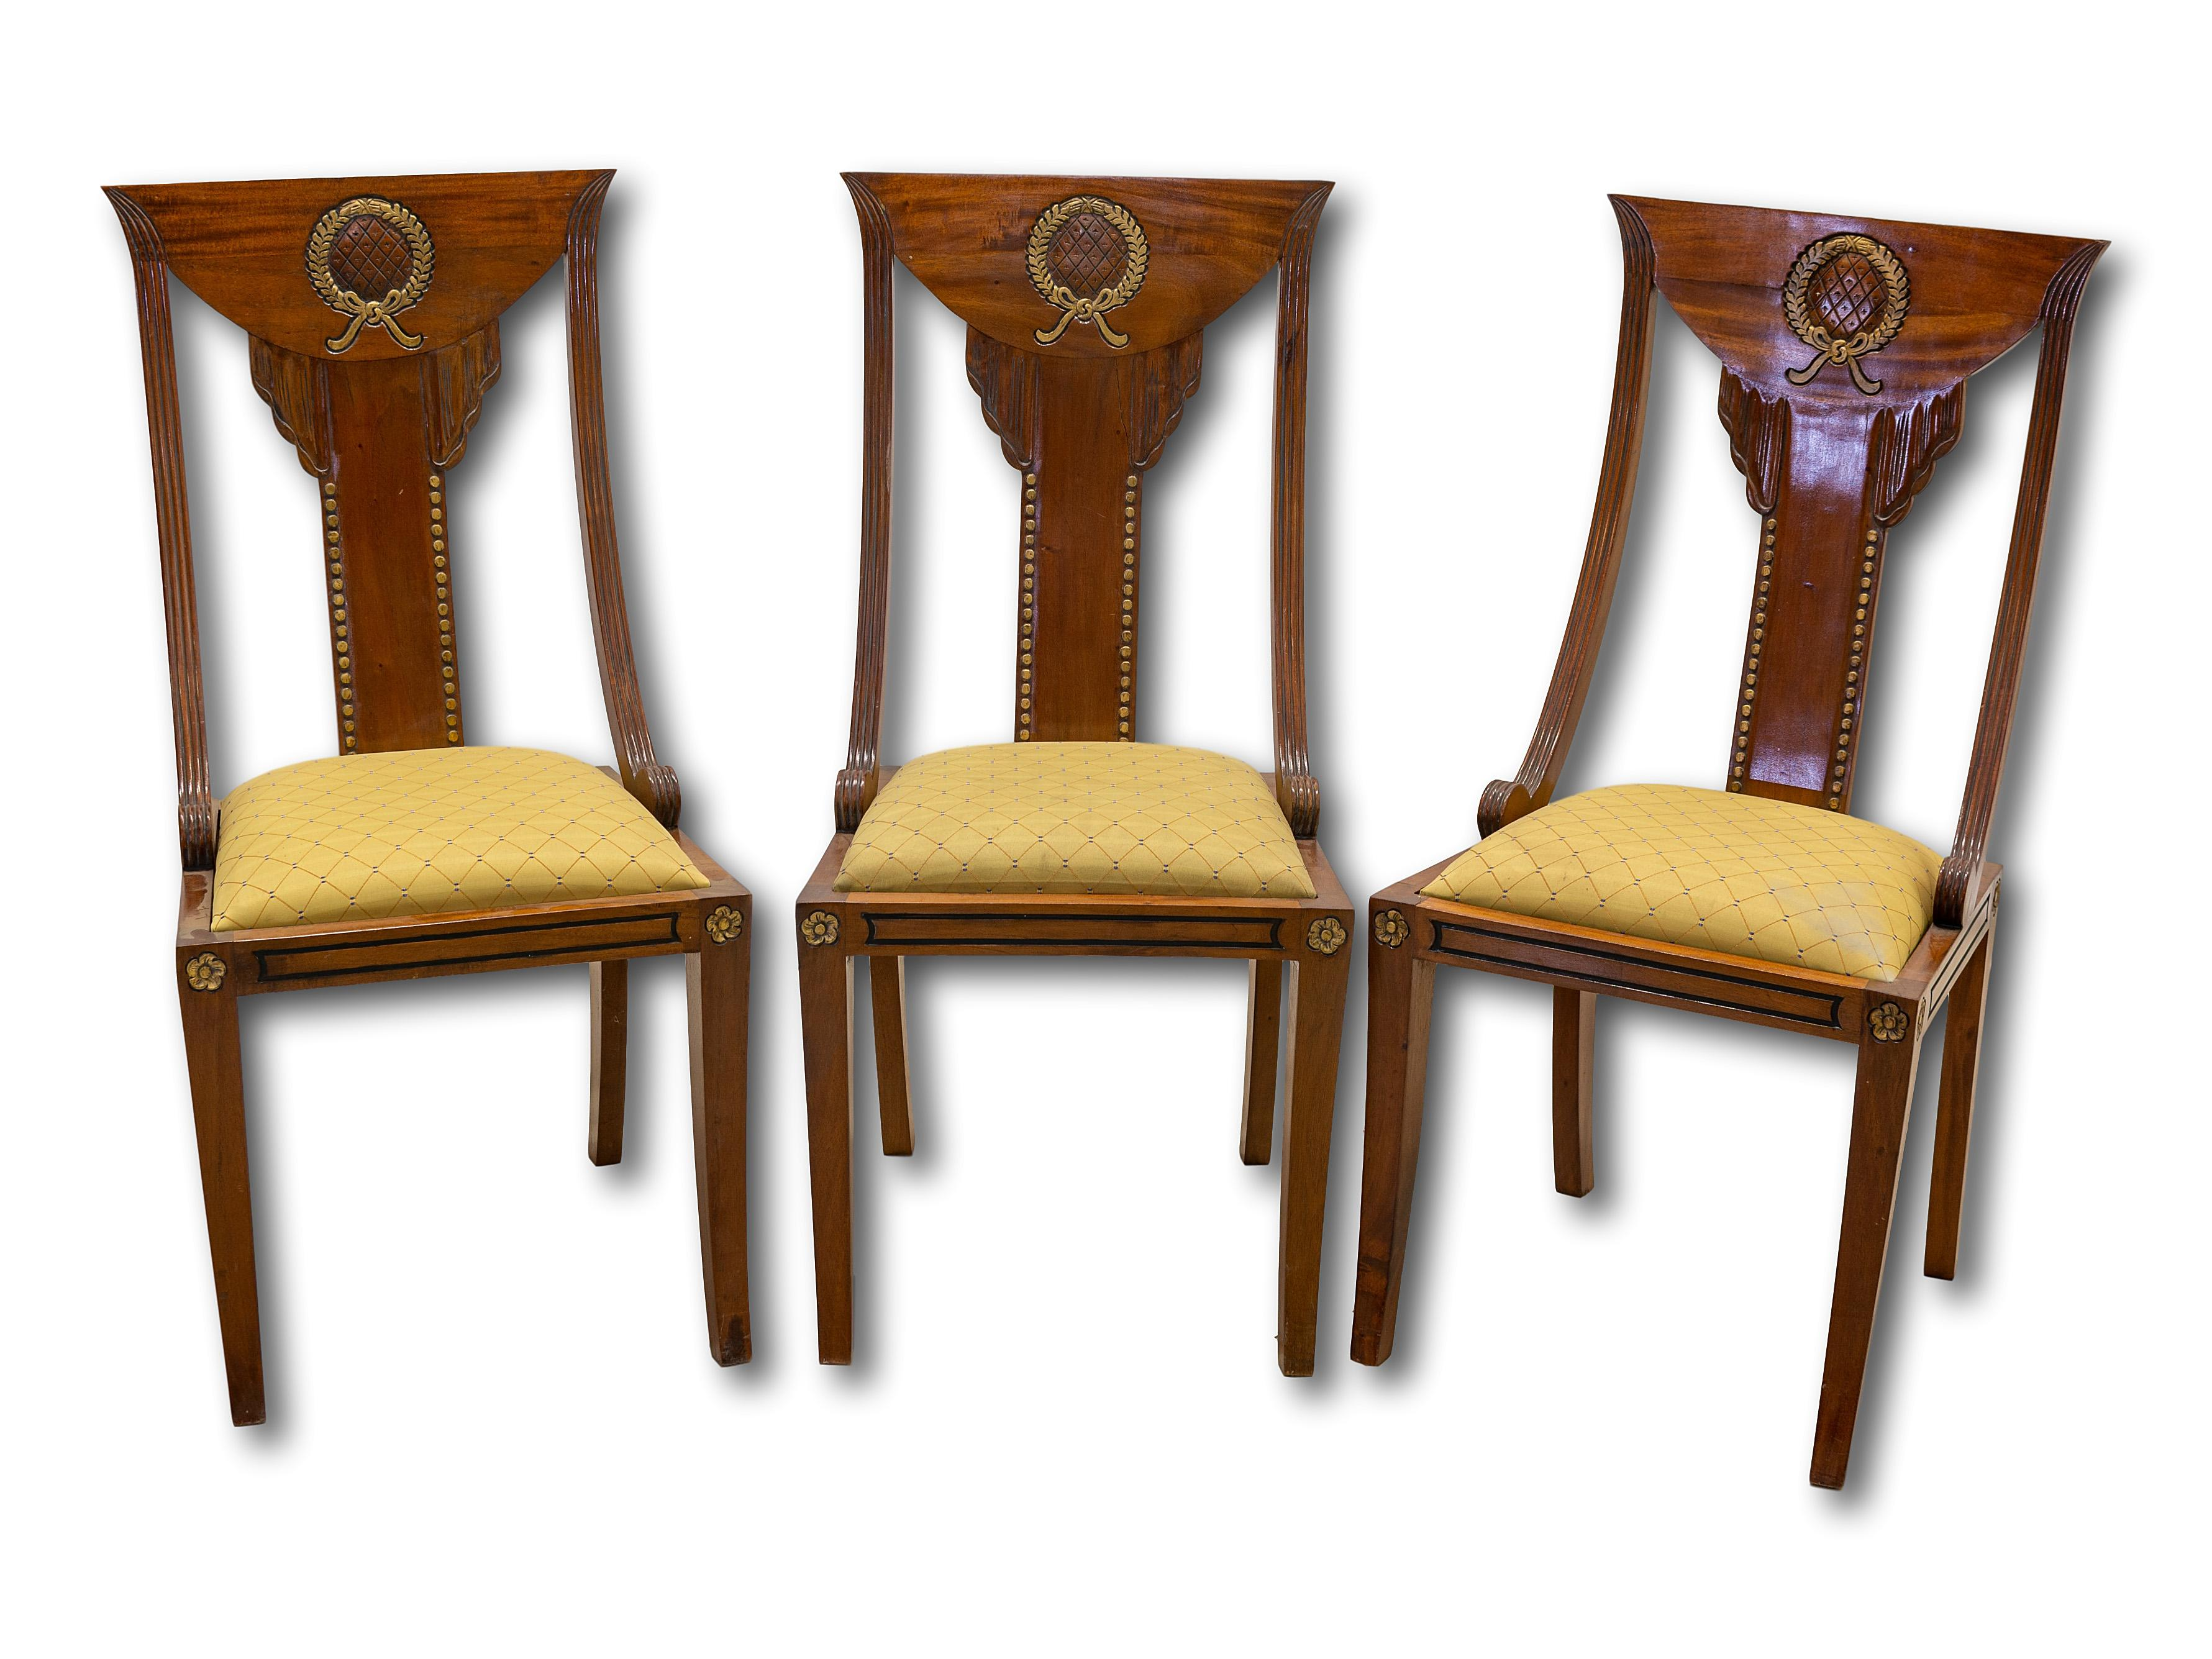 A Set of 3 Mid 20th Century Swedish Style Dining Chairs,